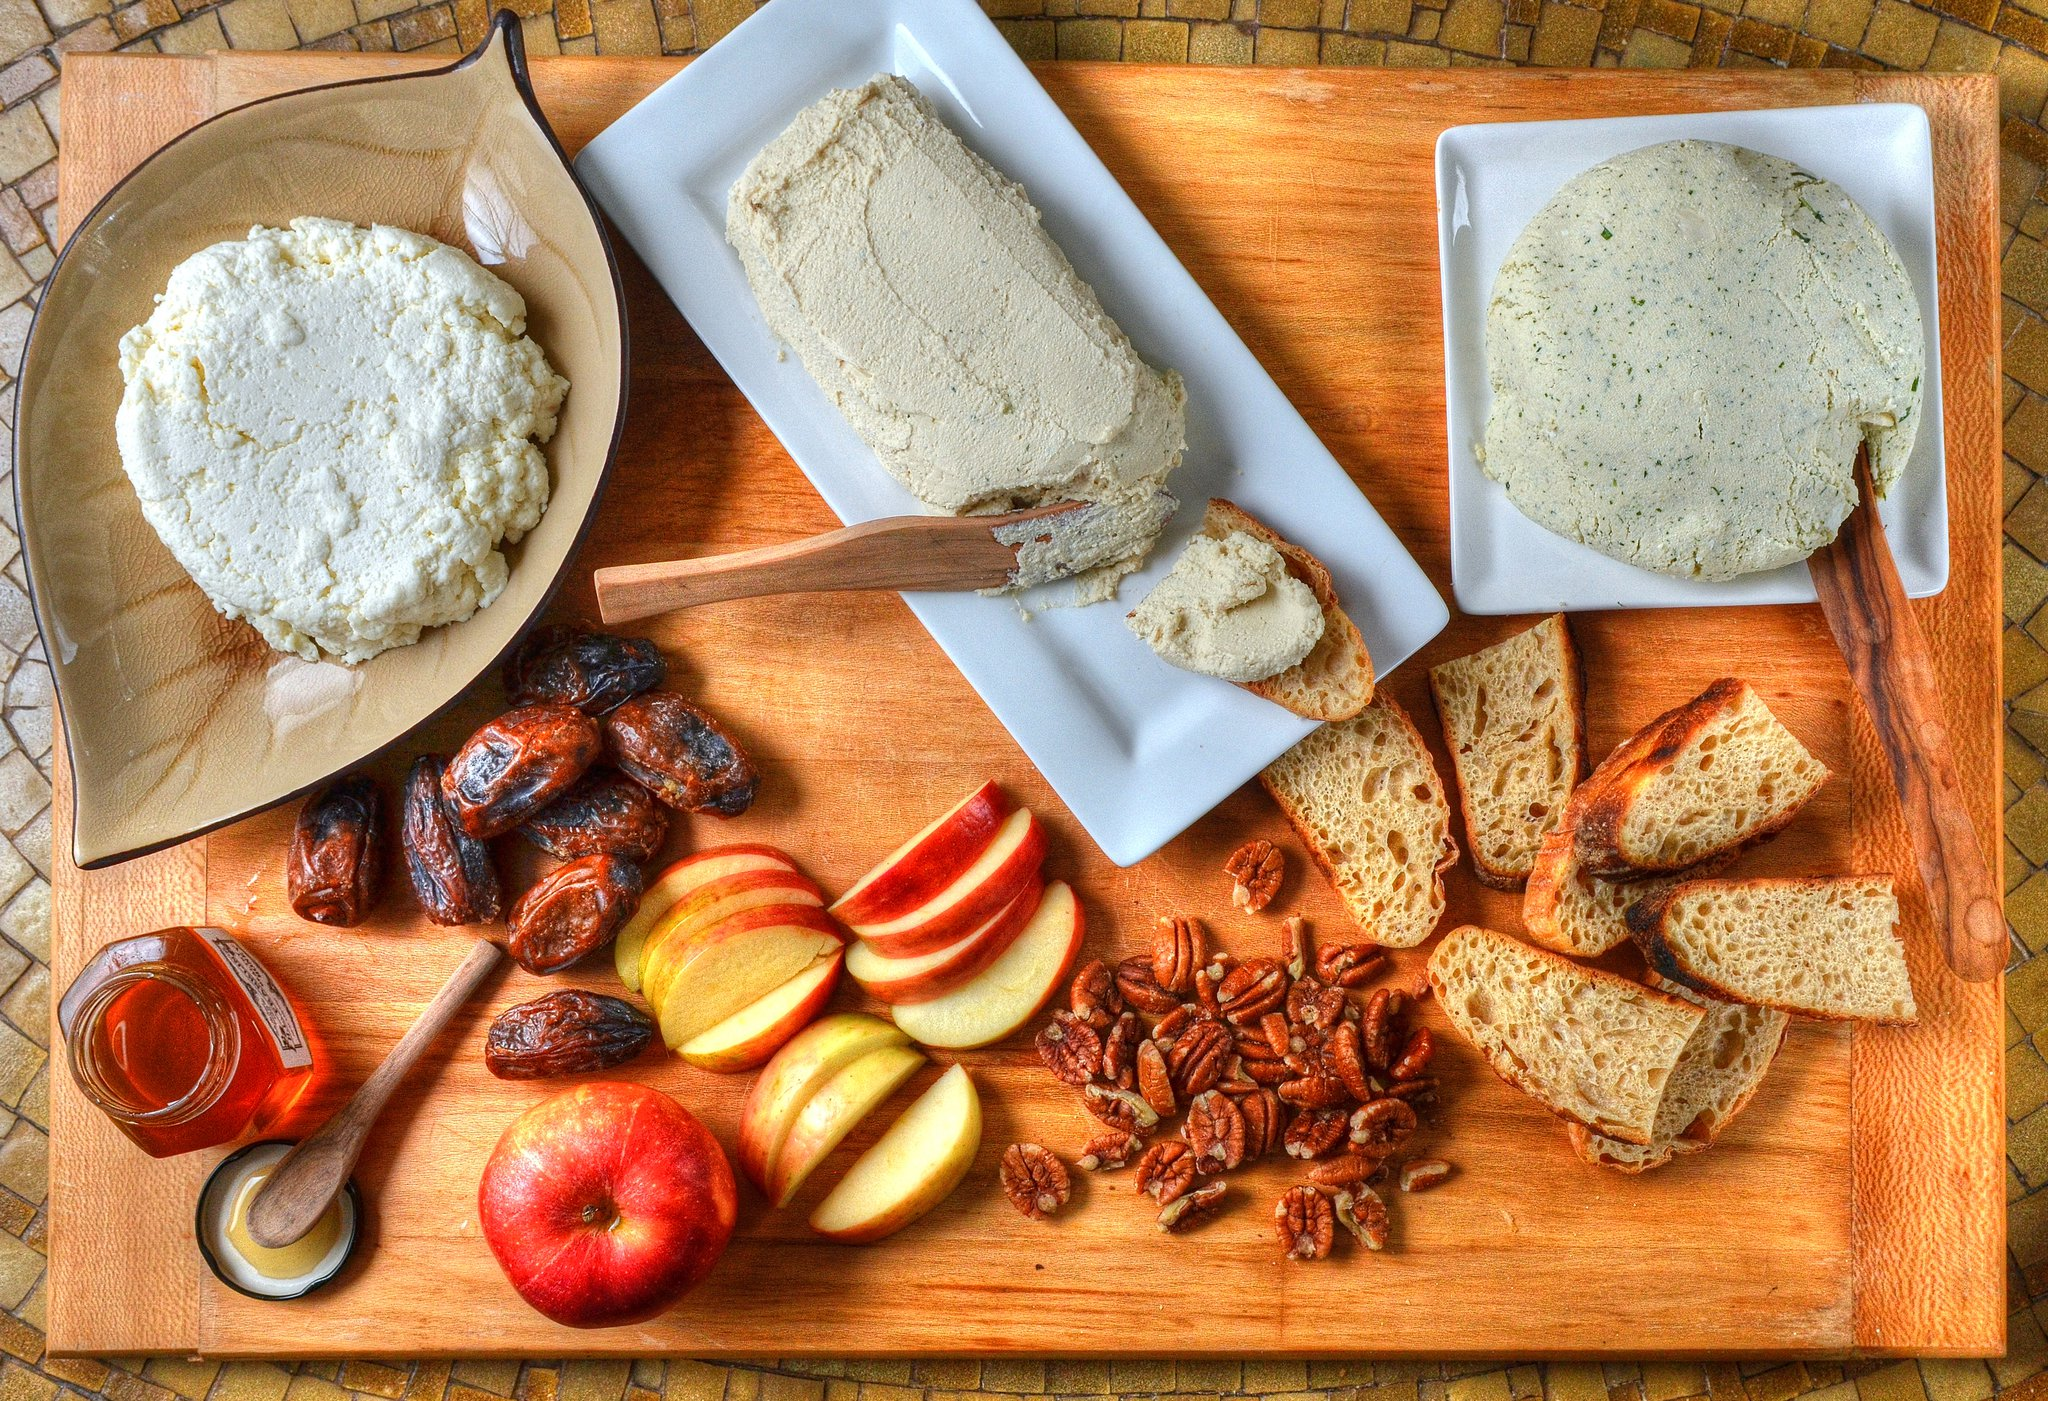 Make great cheese, no cow needed